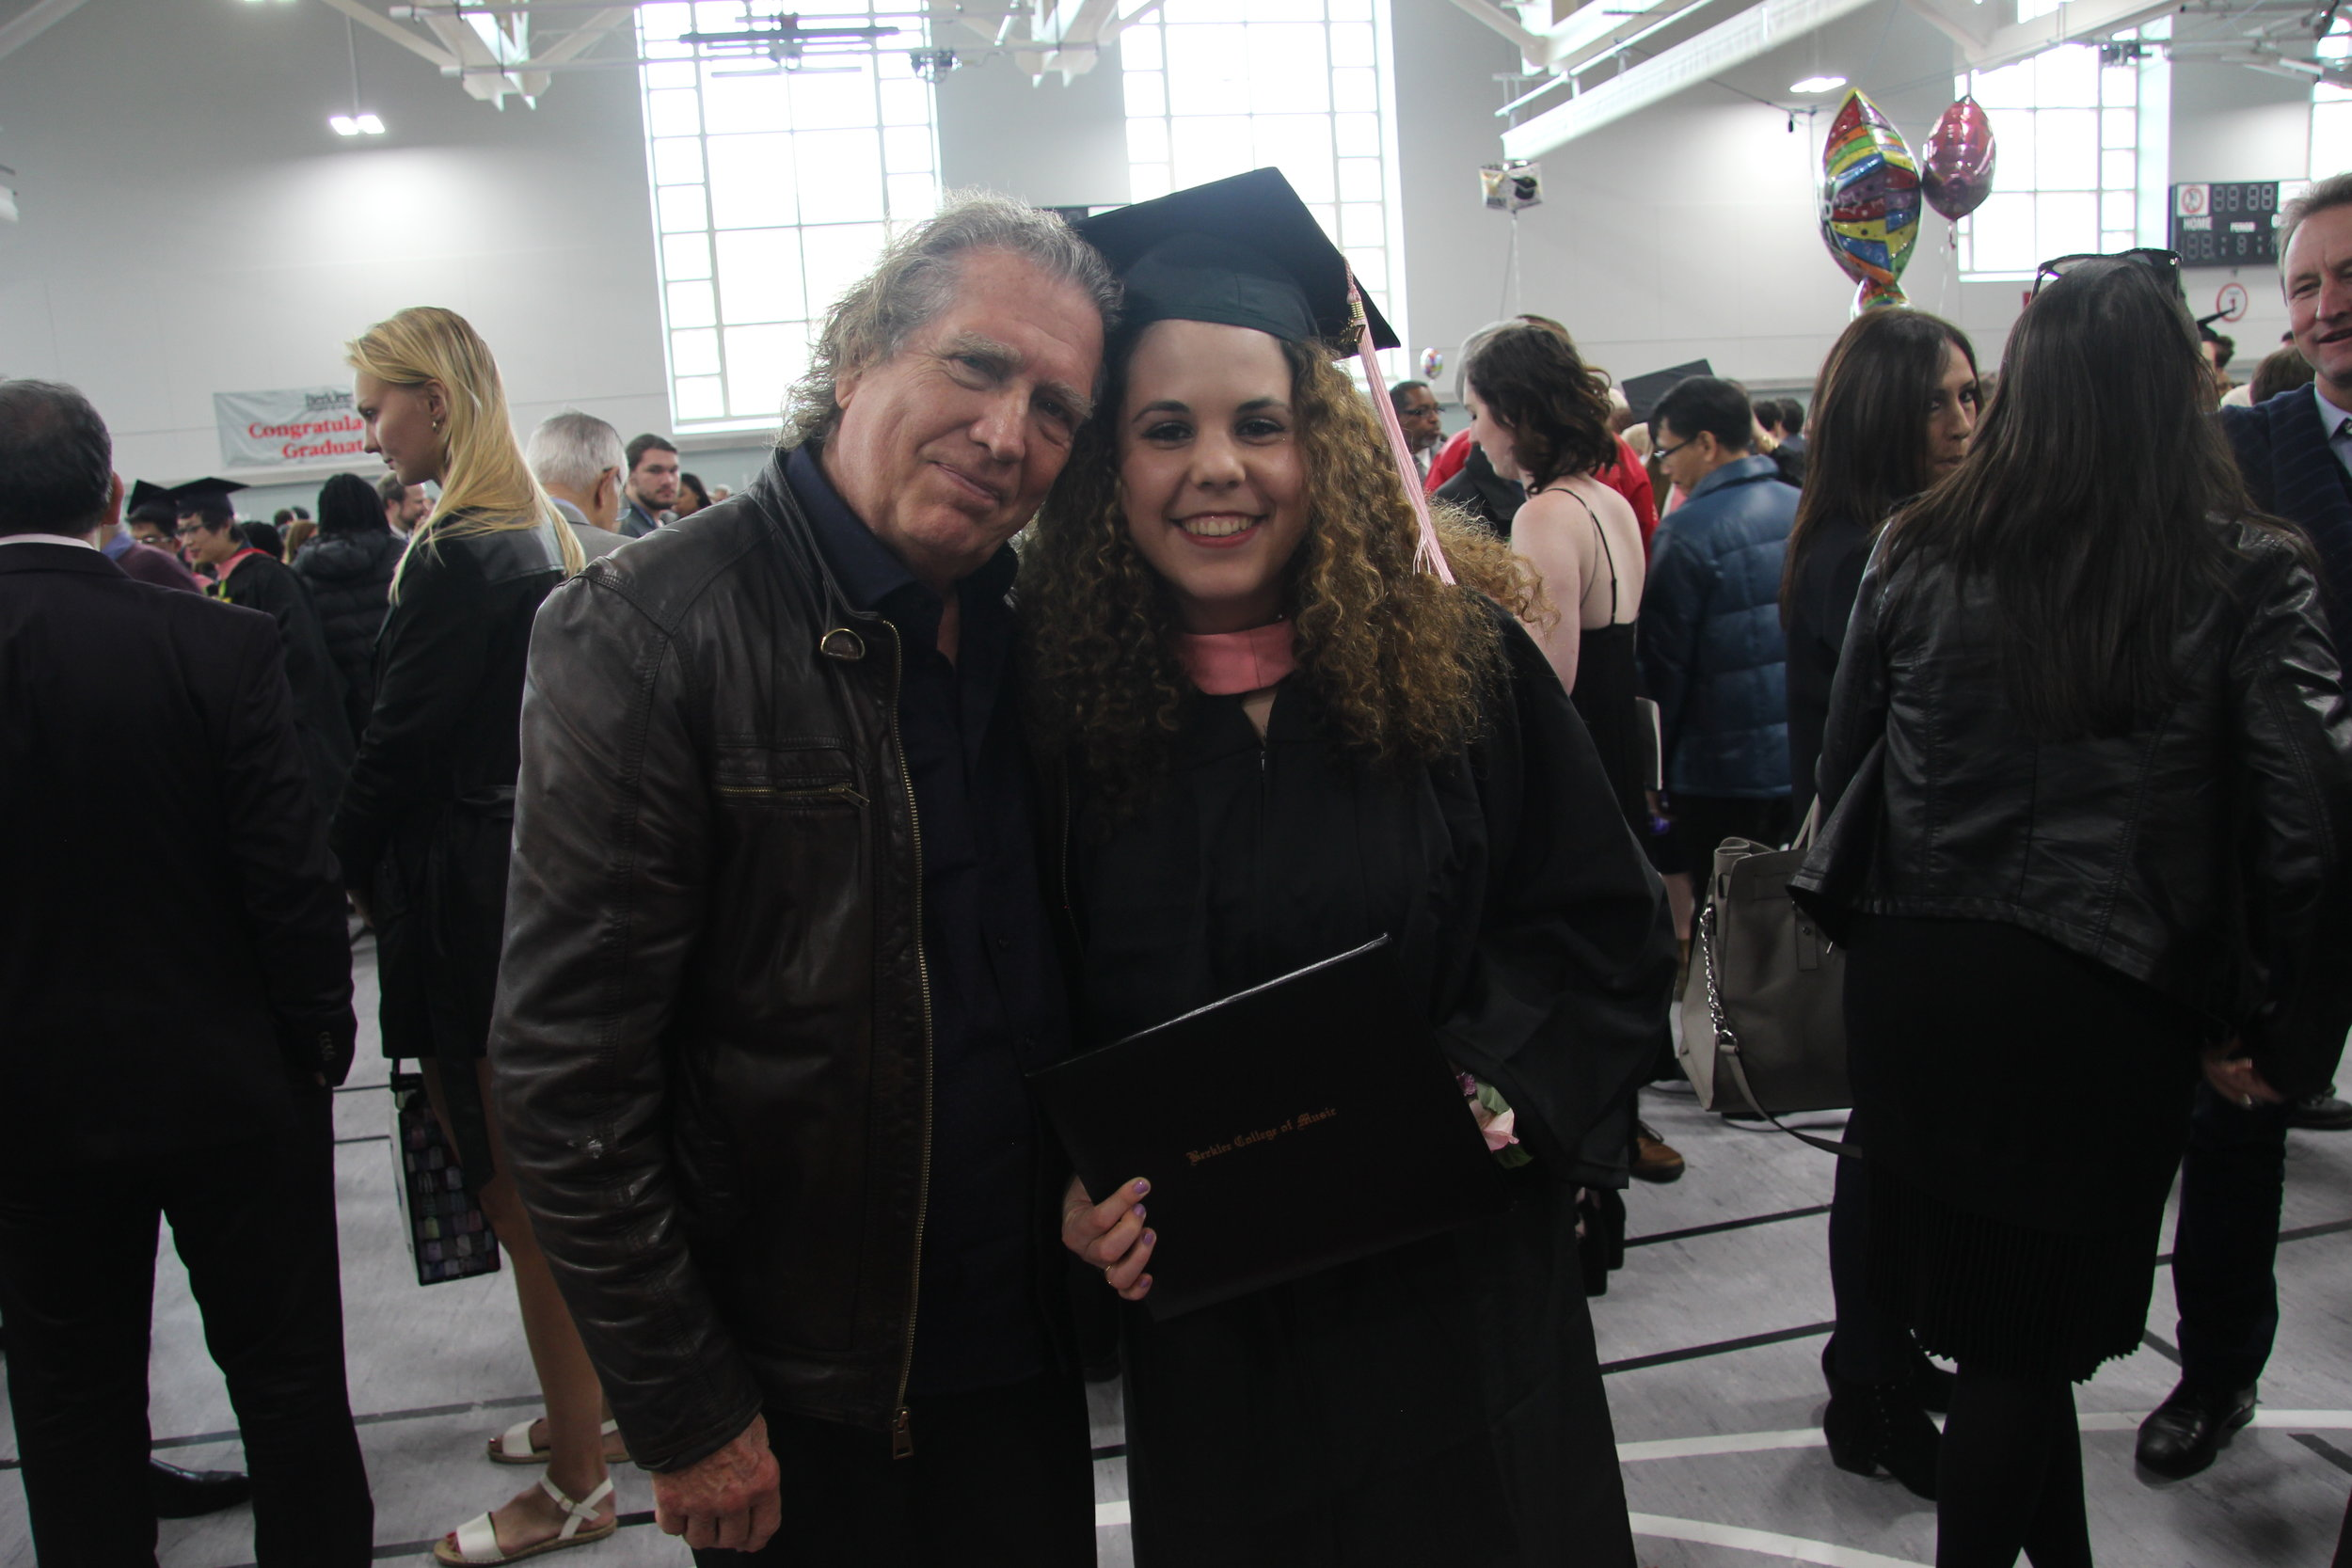 Julia on graduation day with one of her favorite songwriting mentors and teacher, Pat Pattison.